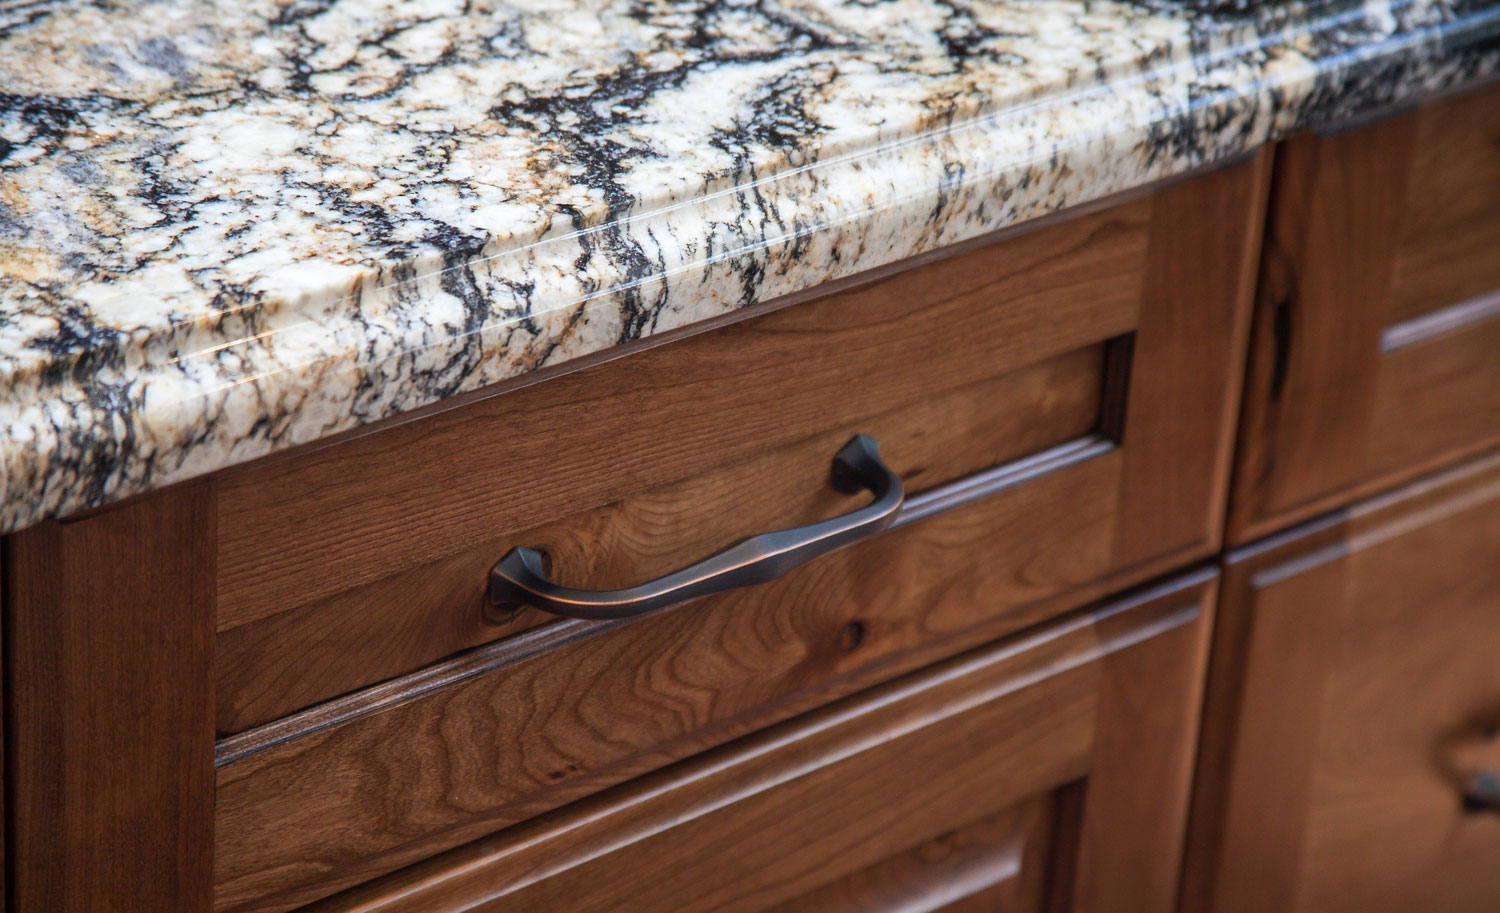 Aged Bronze Hardware on this cabinet